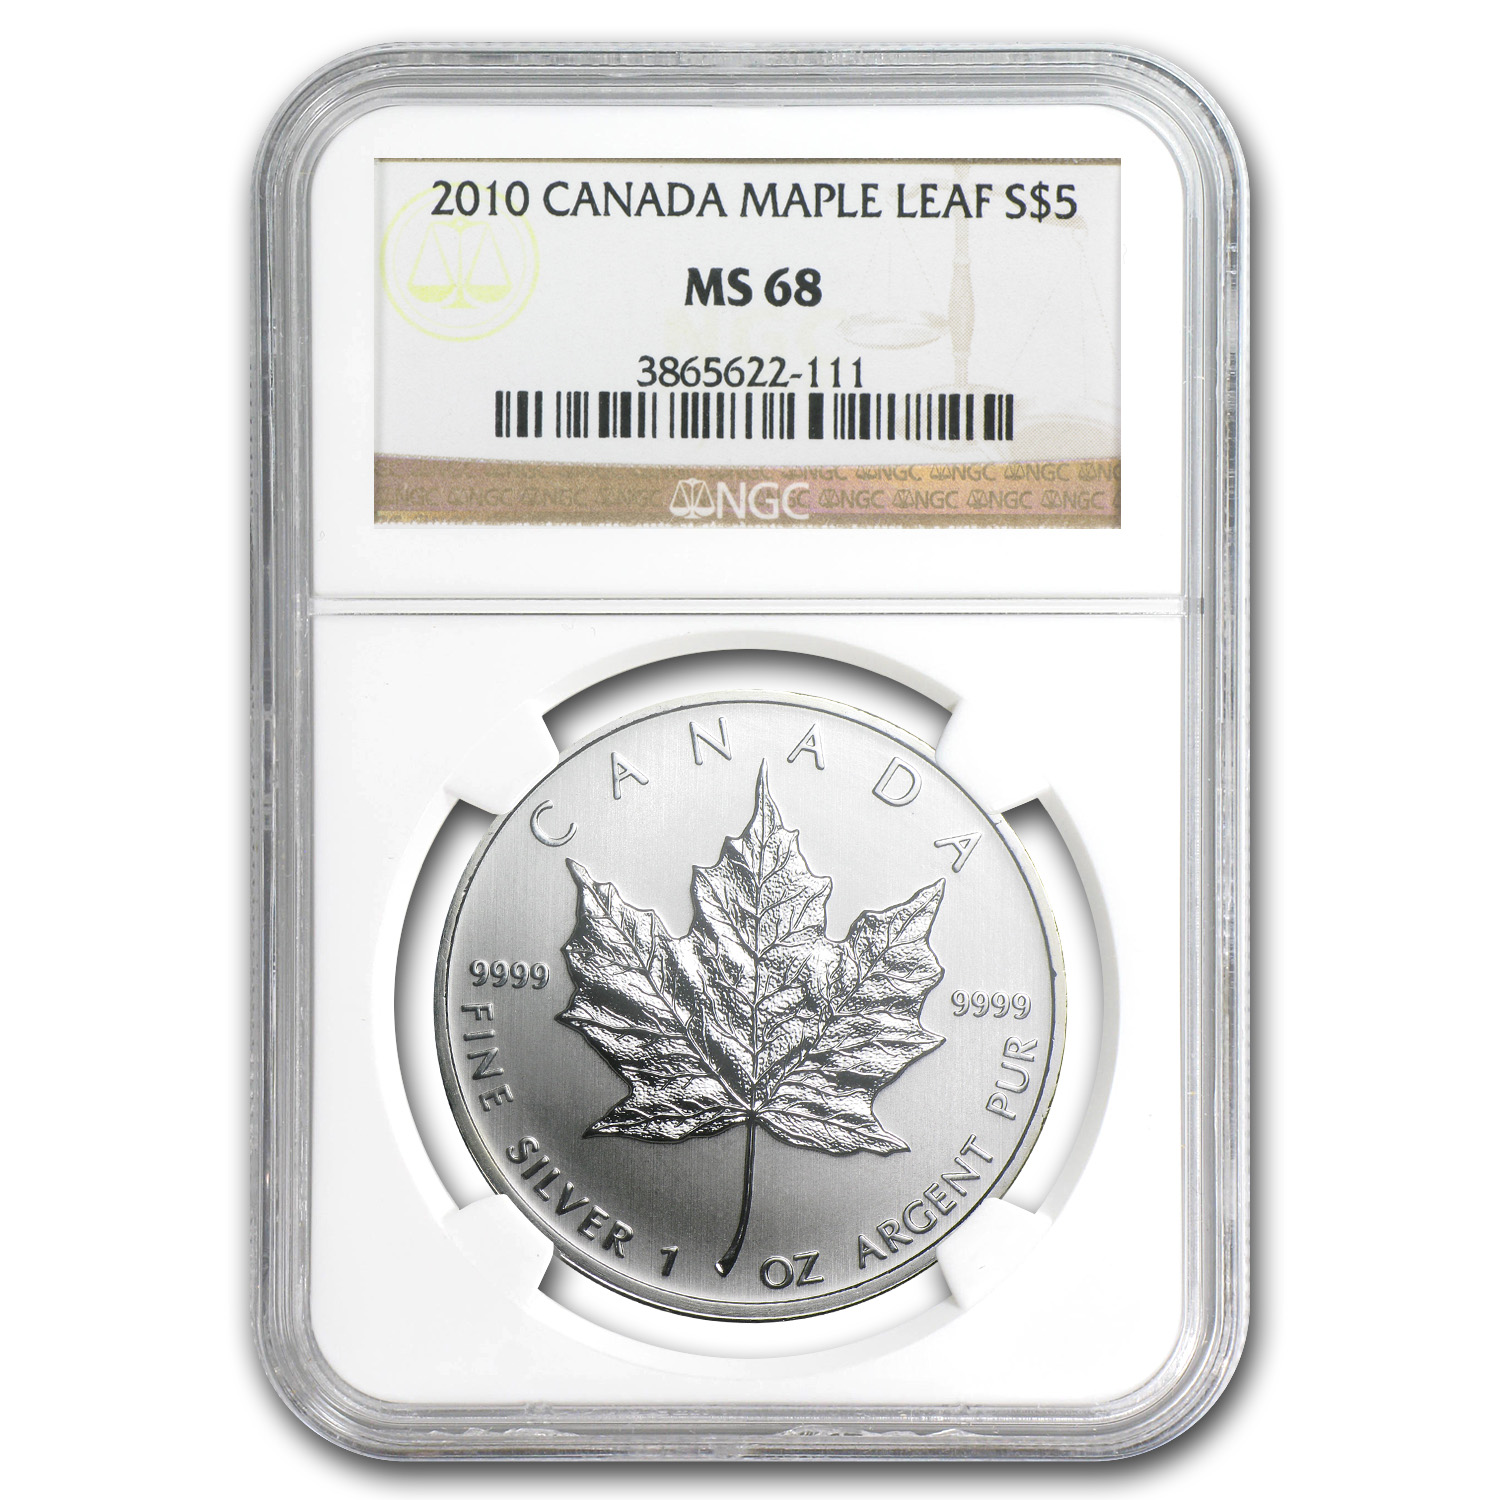 2010 Canada 1 oz Silver Maple Leaf MS-68 NGC